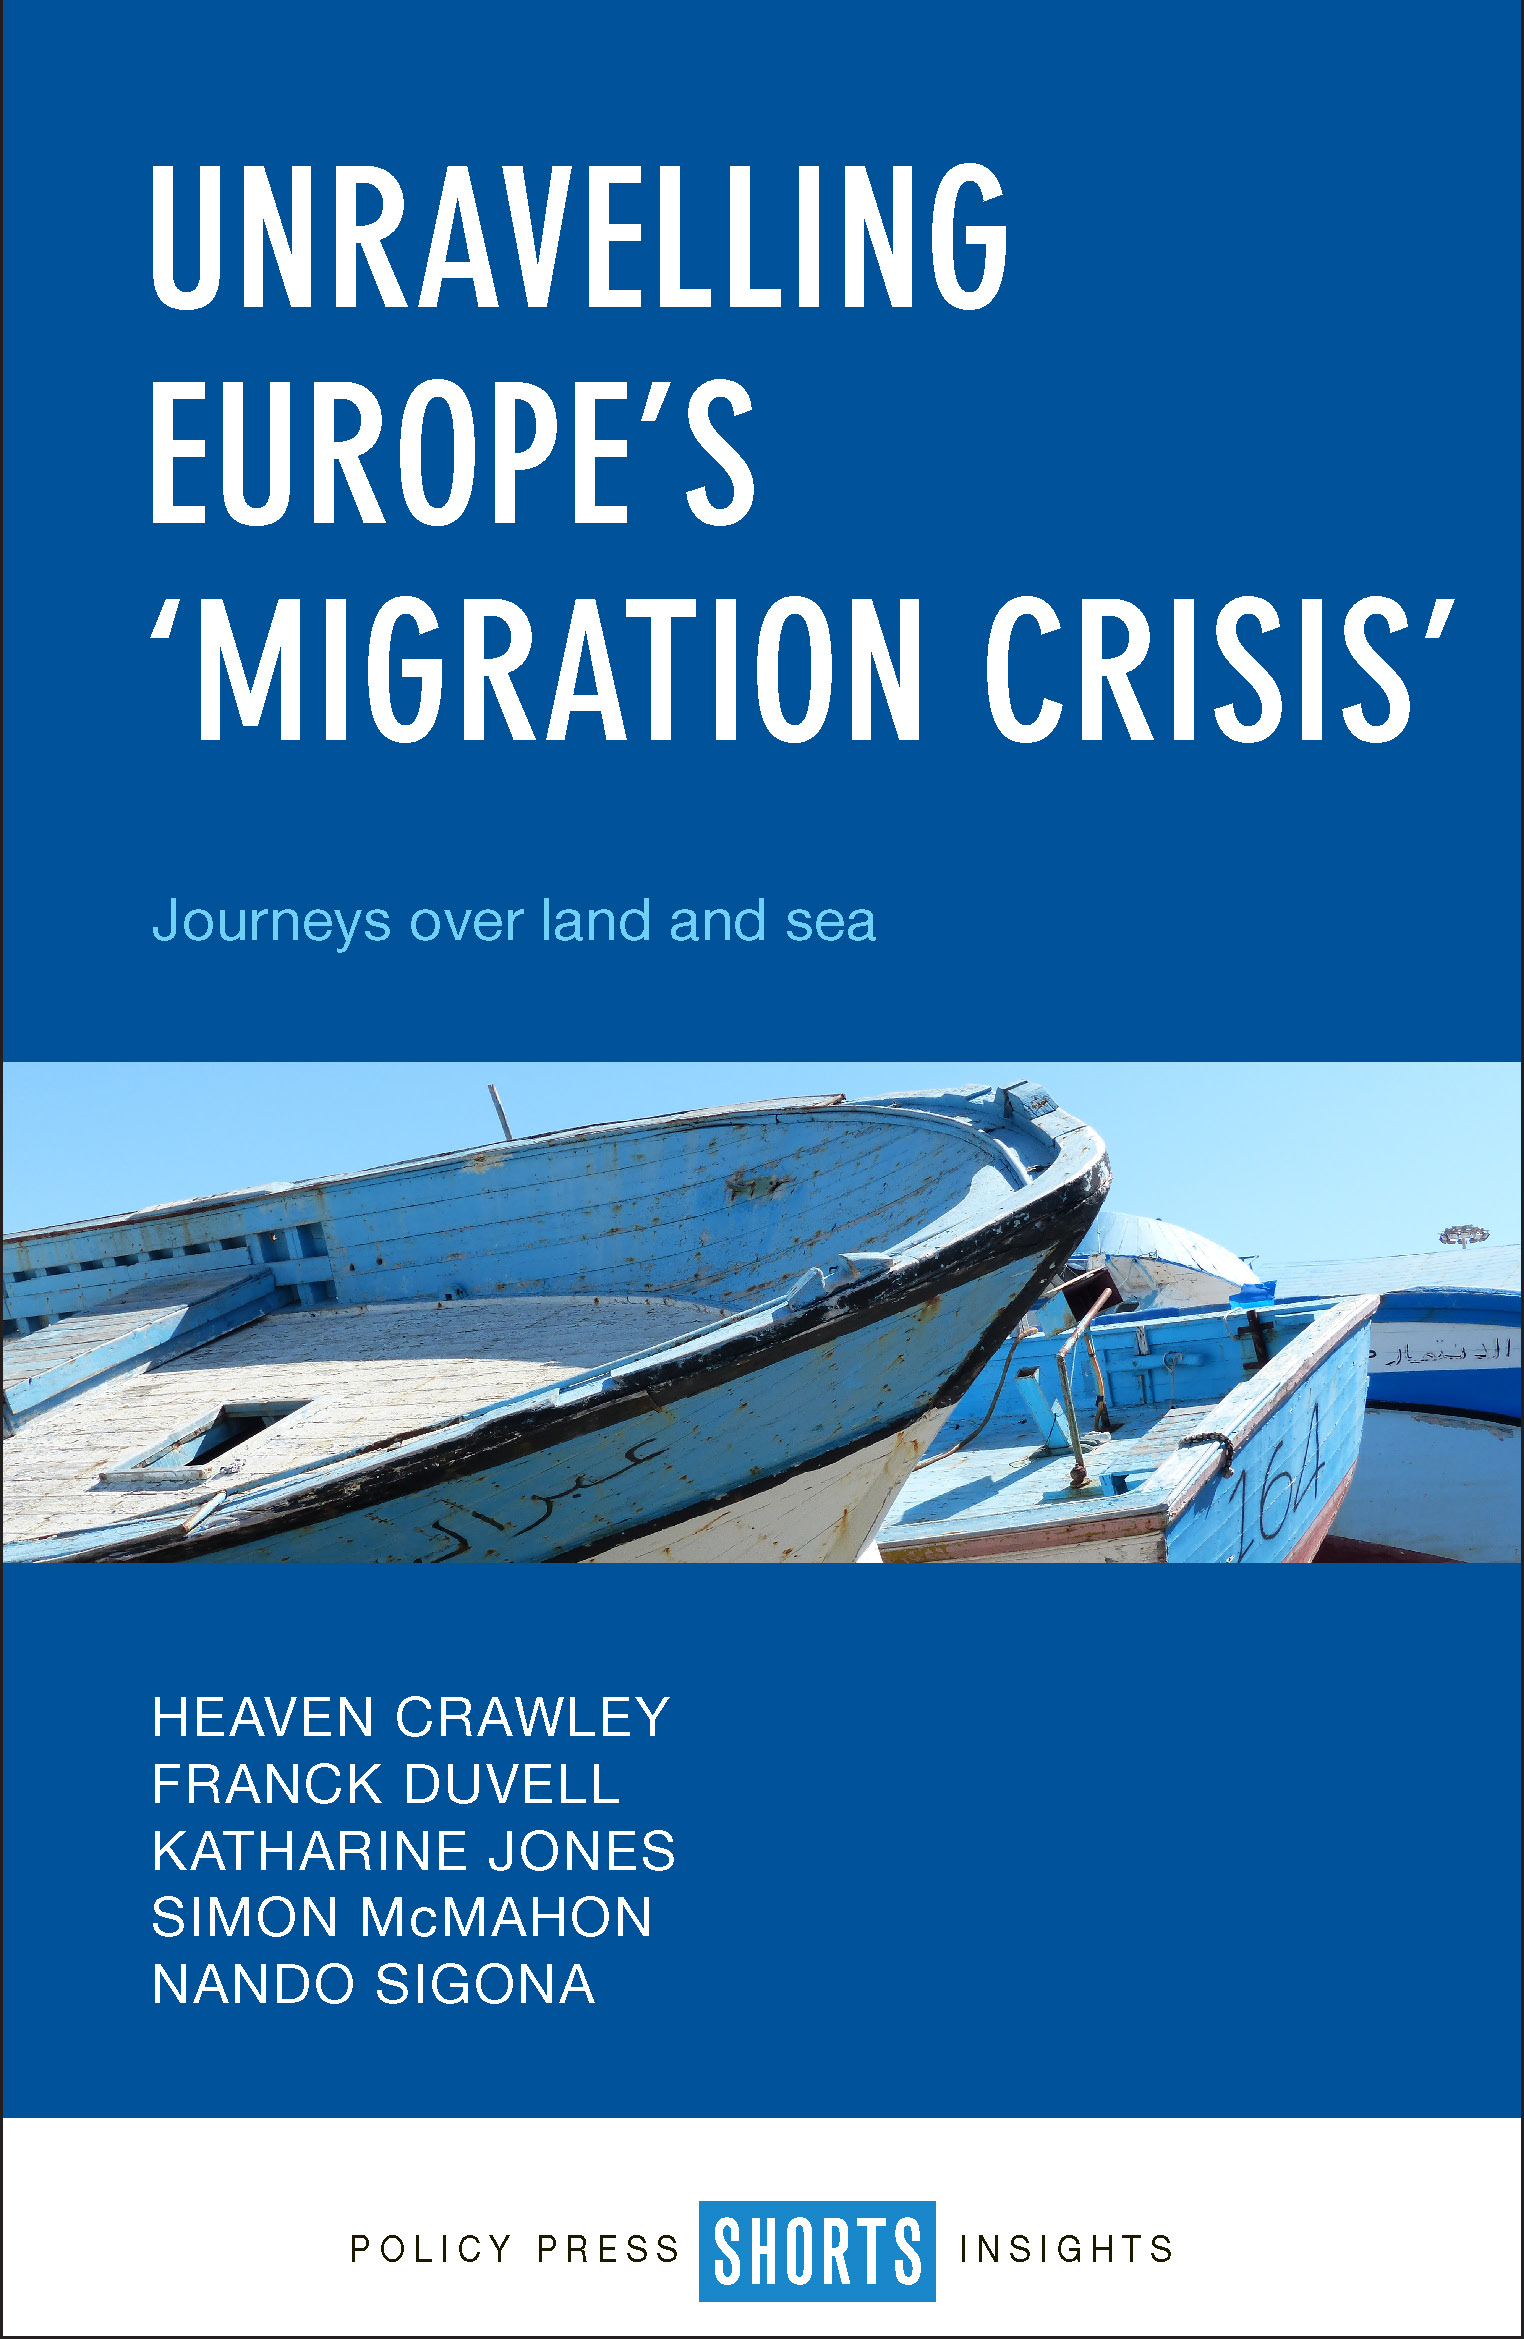 image of boats on blue background, cover of Unravelling Europe's 'migration crisis'